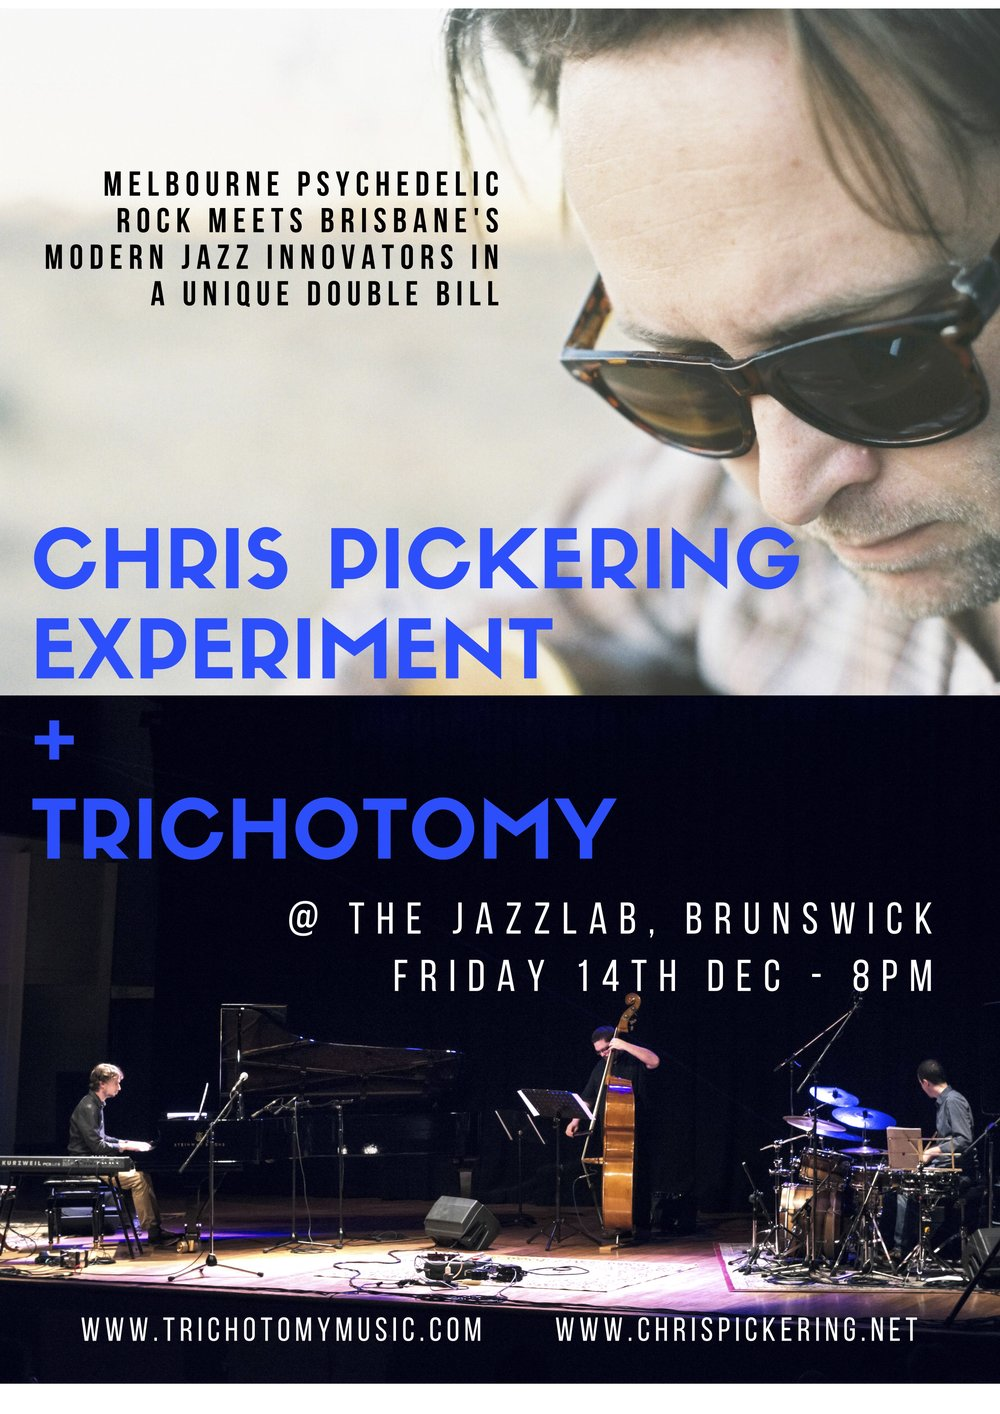 CHRIS PICKERING EXPERIMENT +TRICHOTOMY.jpg